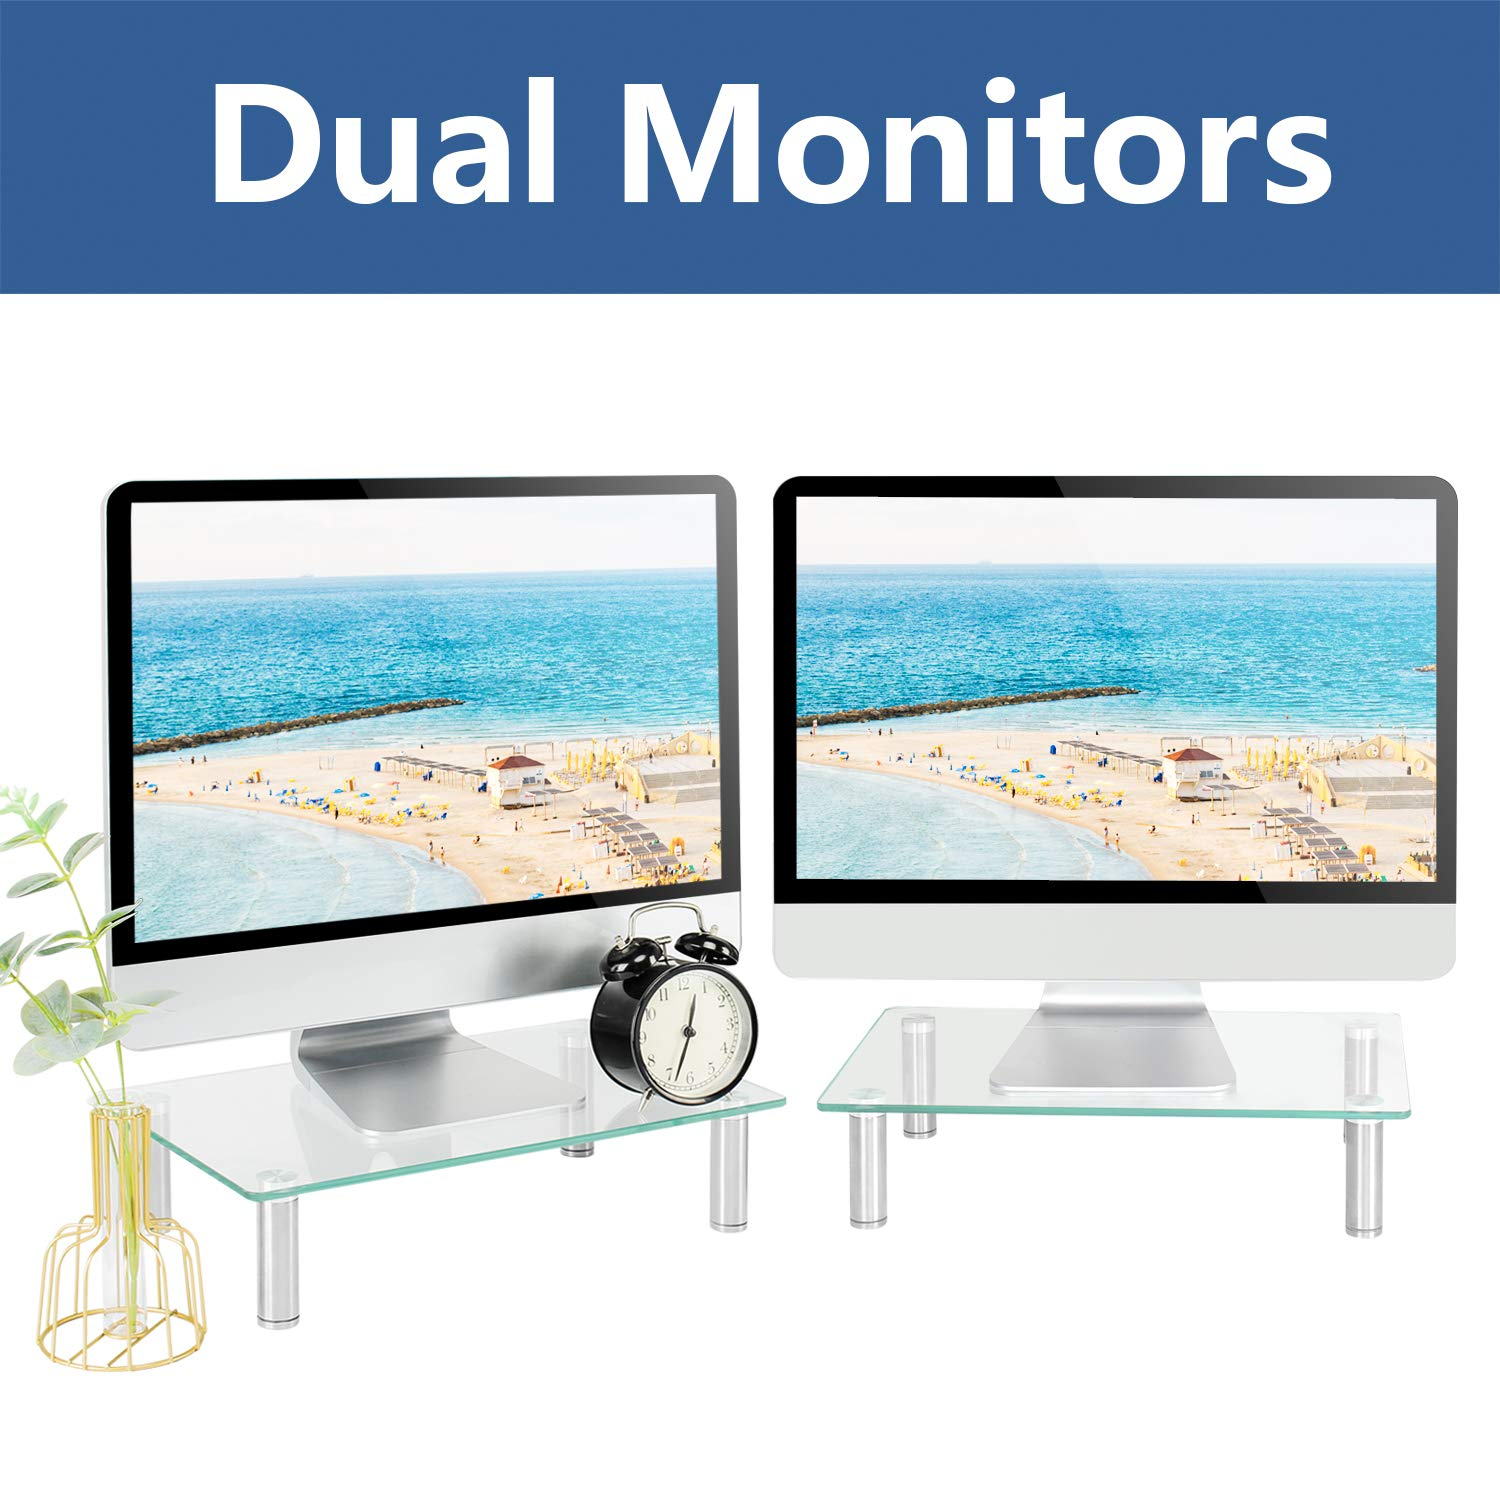 Rfiver Dual Monitor Stand Riser 2 Pack Multifunctional Desktop Organizer Computer Tabletop Screen Riser Stand for TV PC iMac Laptop Printer, Sturdy Made of Tempered Glass & Stainless Steel Legs CM2004